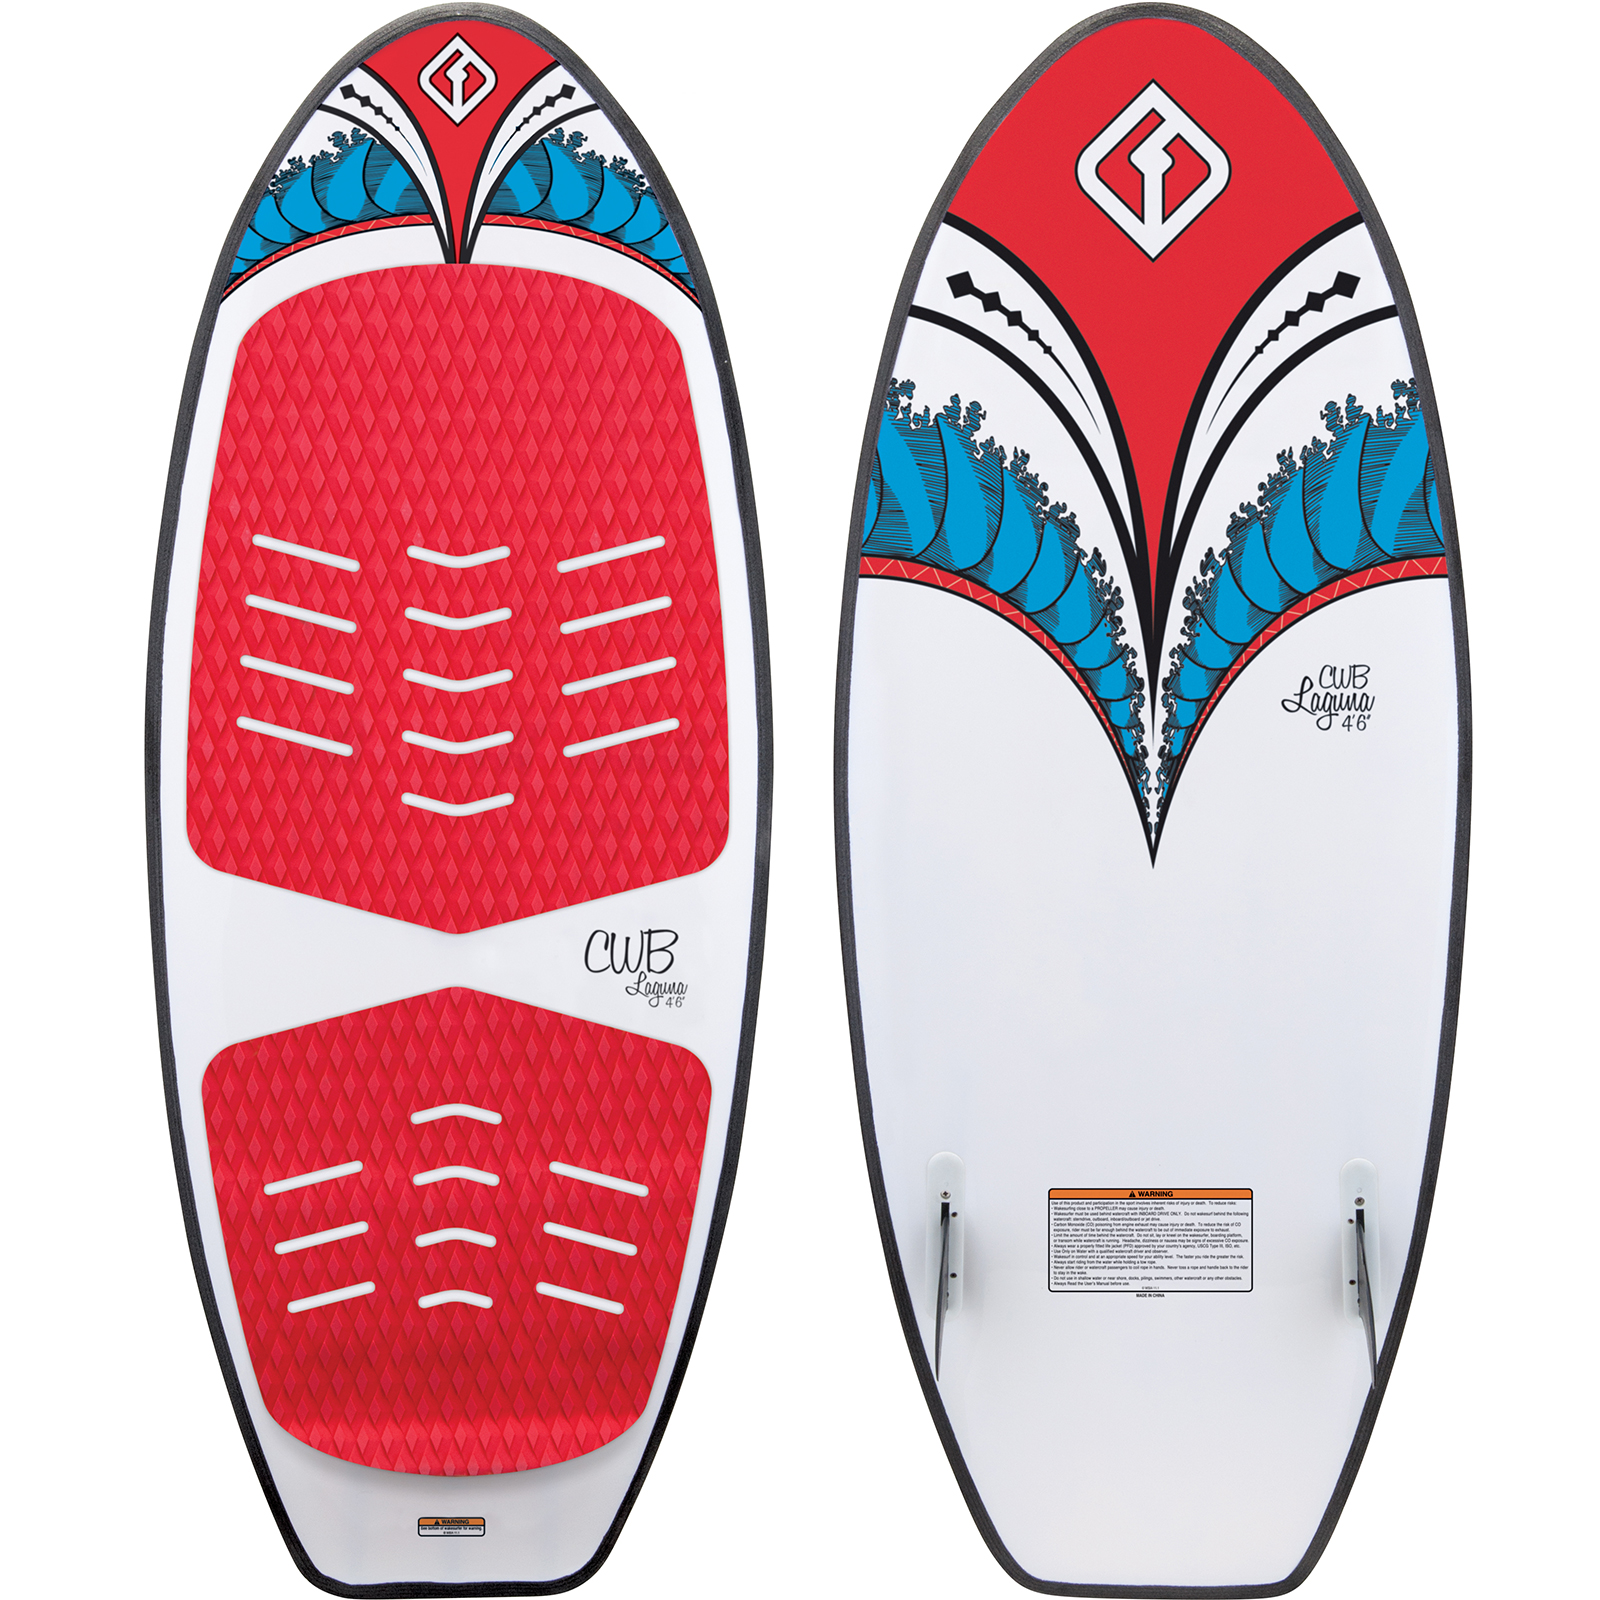 LAGUNA 4.6 WAKESURFER W/ROPE PACKAGE CONNELLY 2018